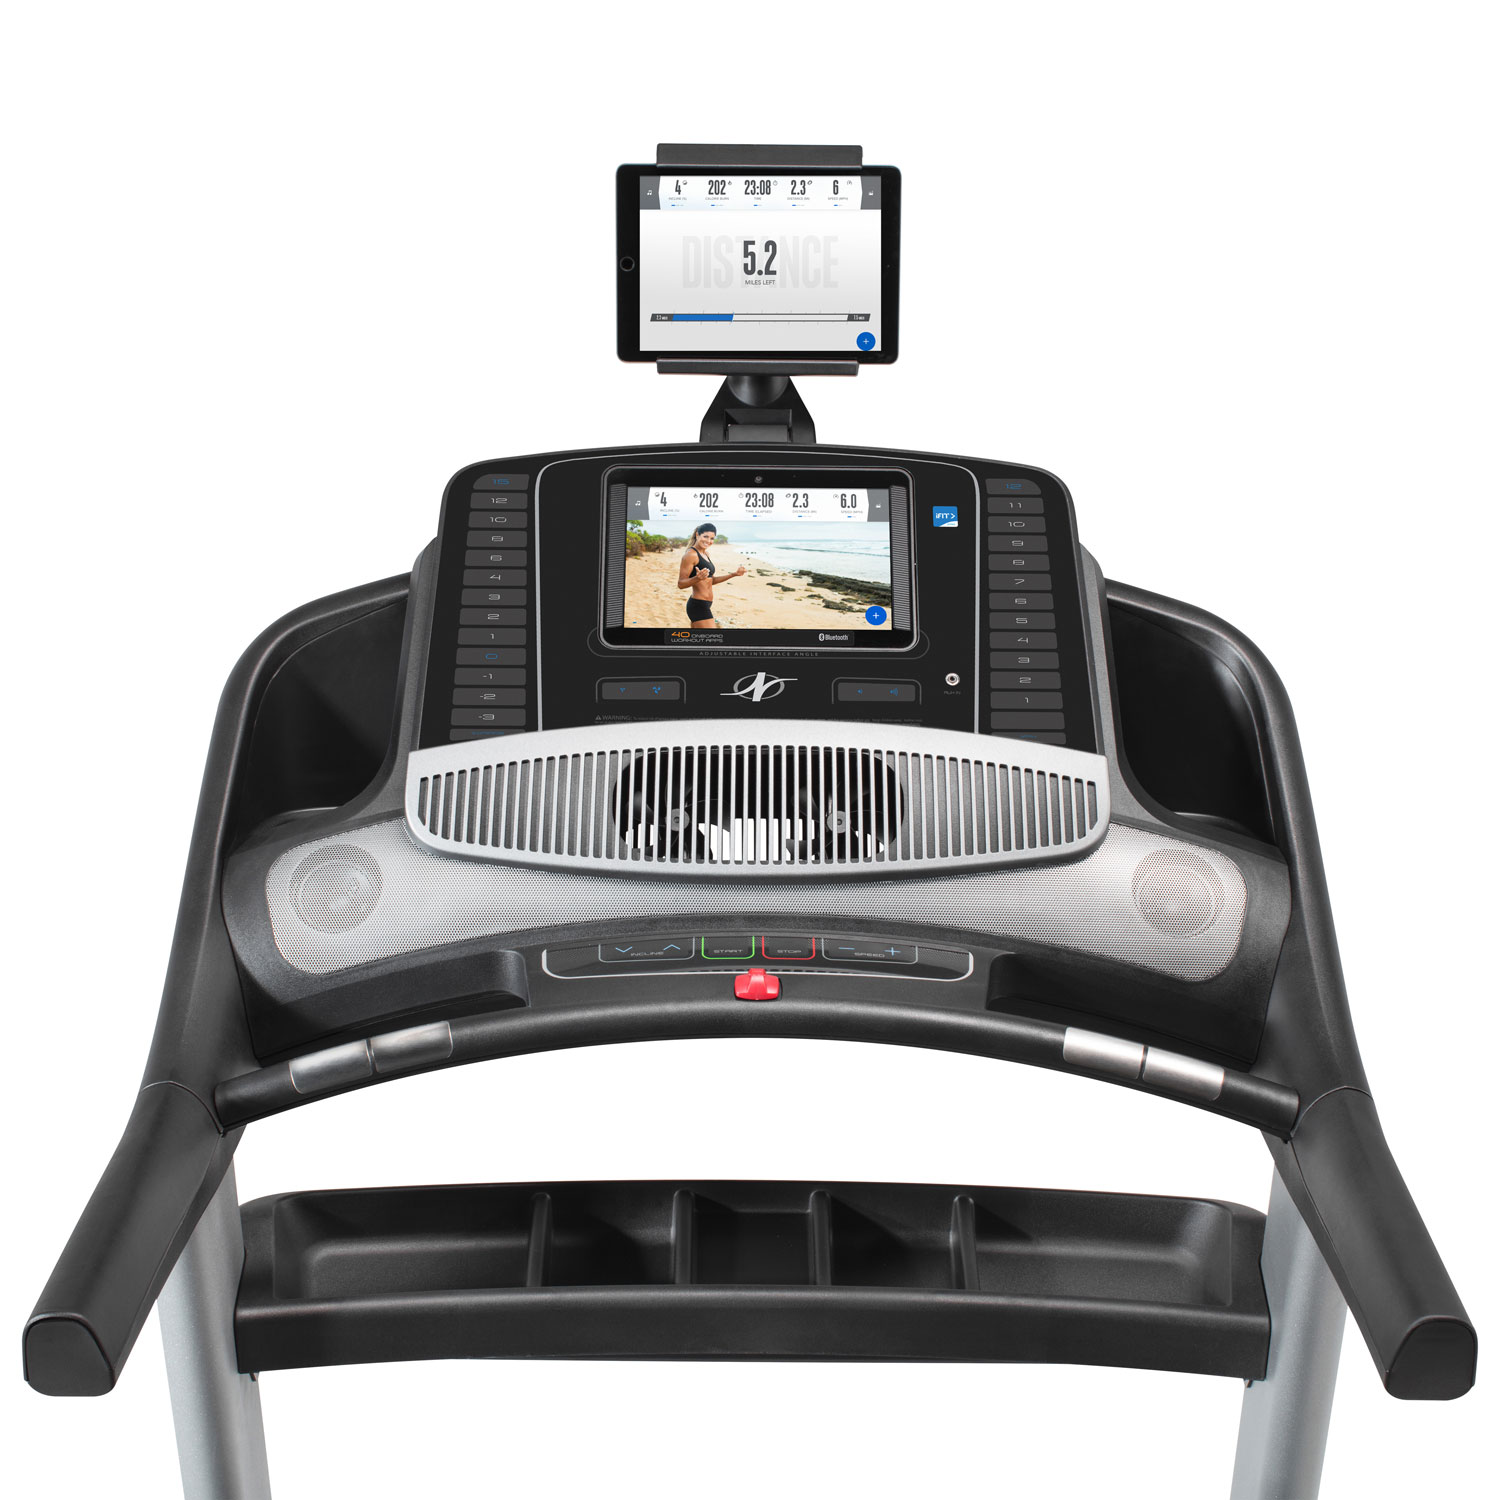 oldable treadmill fitness equipment